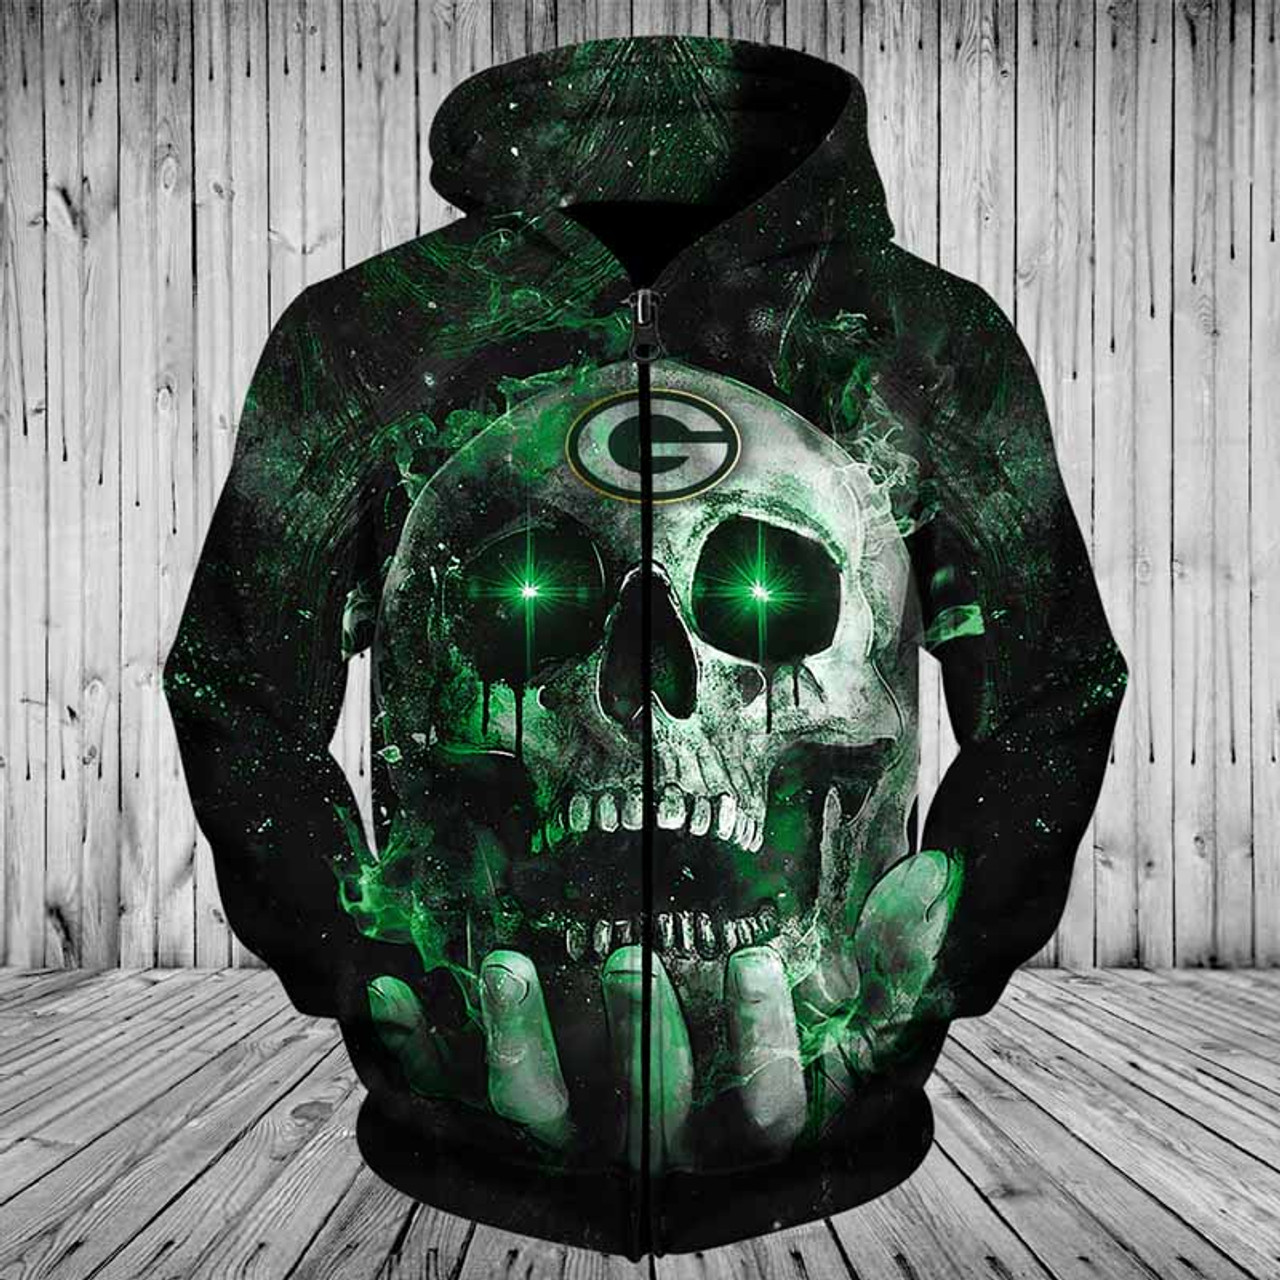 big sale d249b 7d174 **(OFFICIAL-N.F.L.GREEN-BAY-PACKERS-TEAM-ZIPPERED-NEON-SKULL-HOODIES/CUSTOM-3D-NEON-GRAPHIC-PRINTED-DOUBLE-SIDED-ALL-OVER-OFFICIAL-PACKERS-LOGOS,IN-PA...